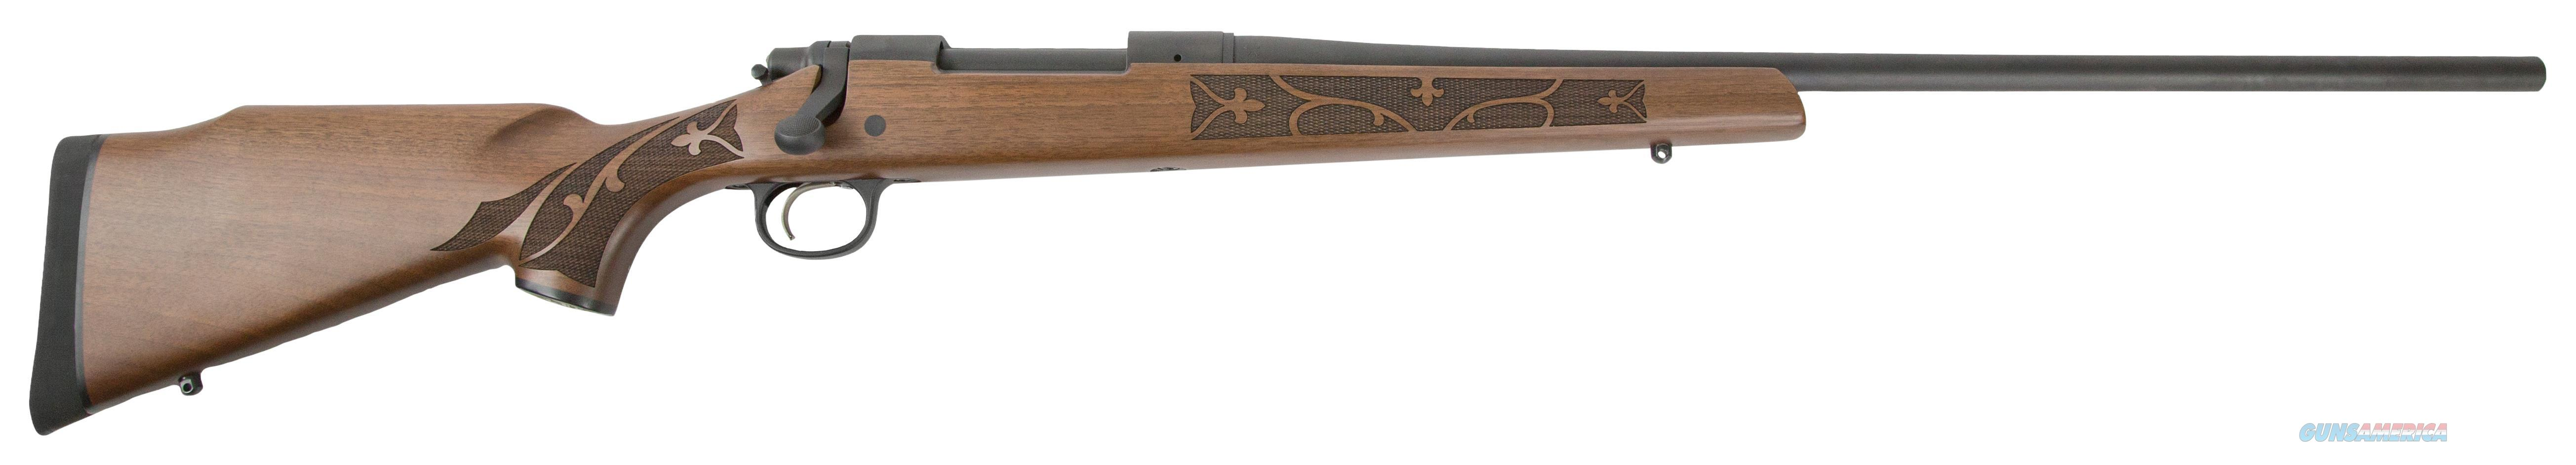 "REMINGTON 700 ADL 200YR LE 243 24"" 84670  Guns > Rifles > Remington Rifles - Modern > Model 700 > Sporting"